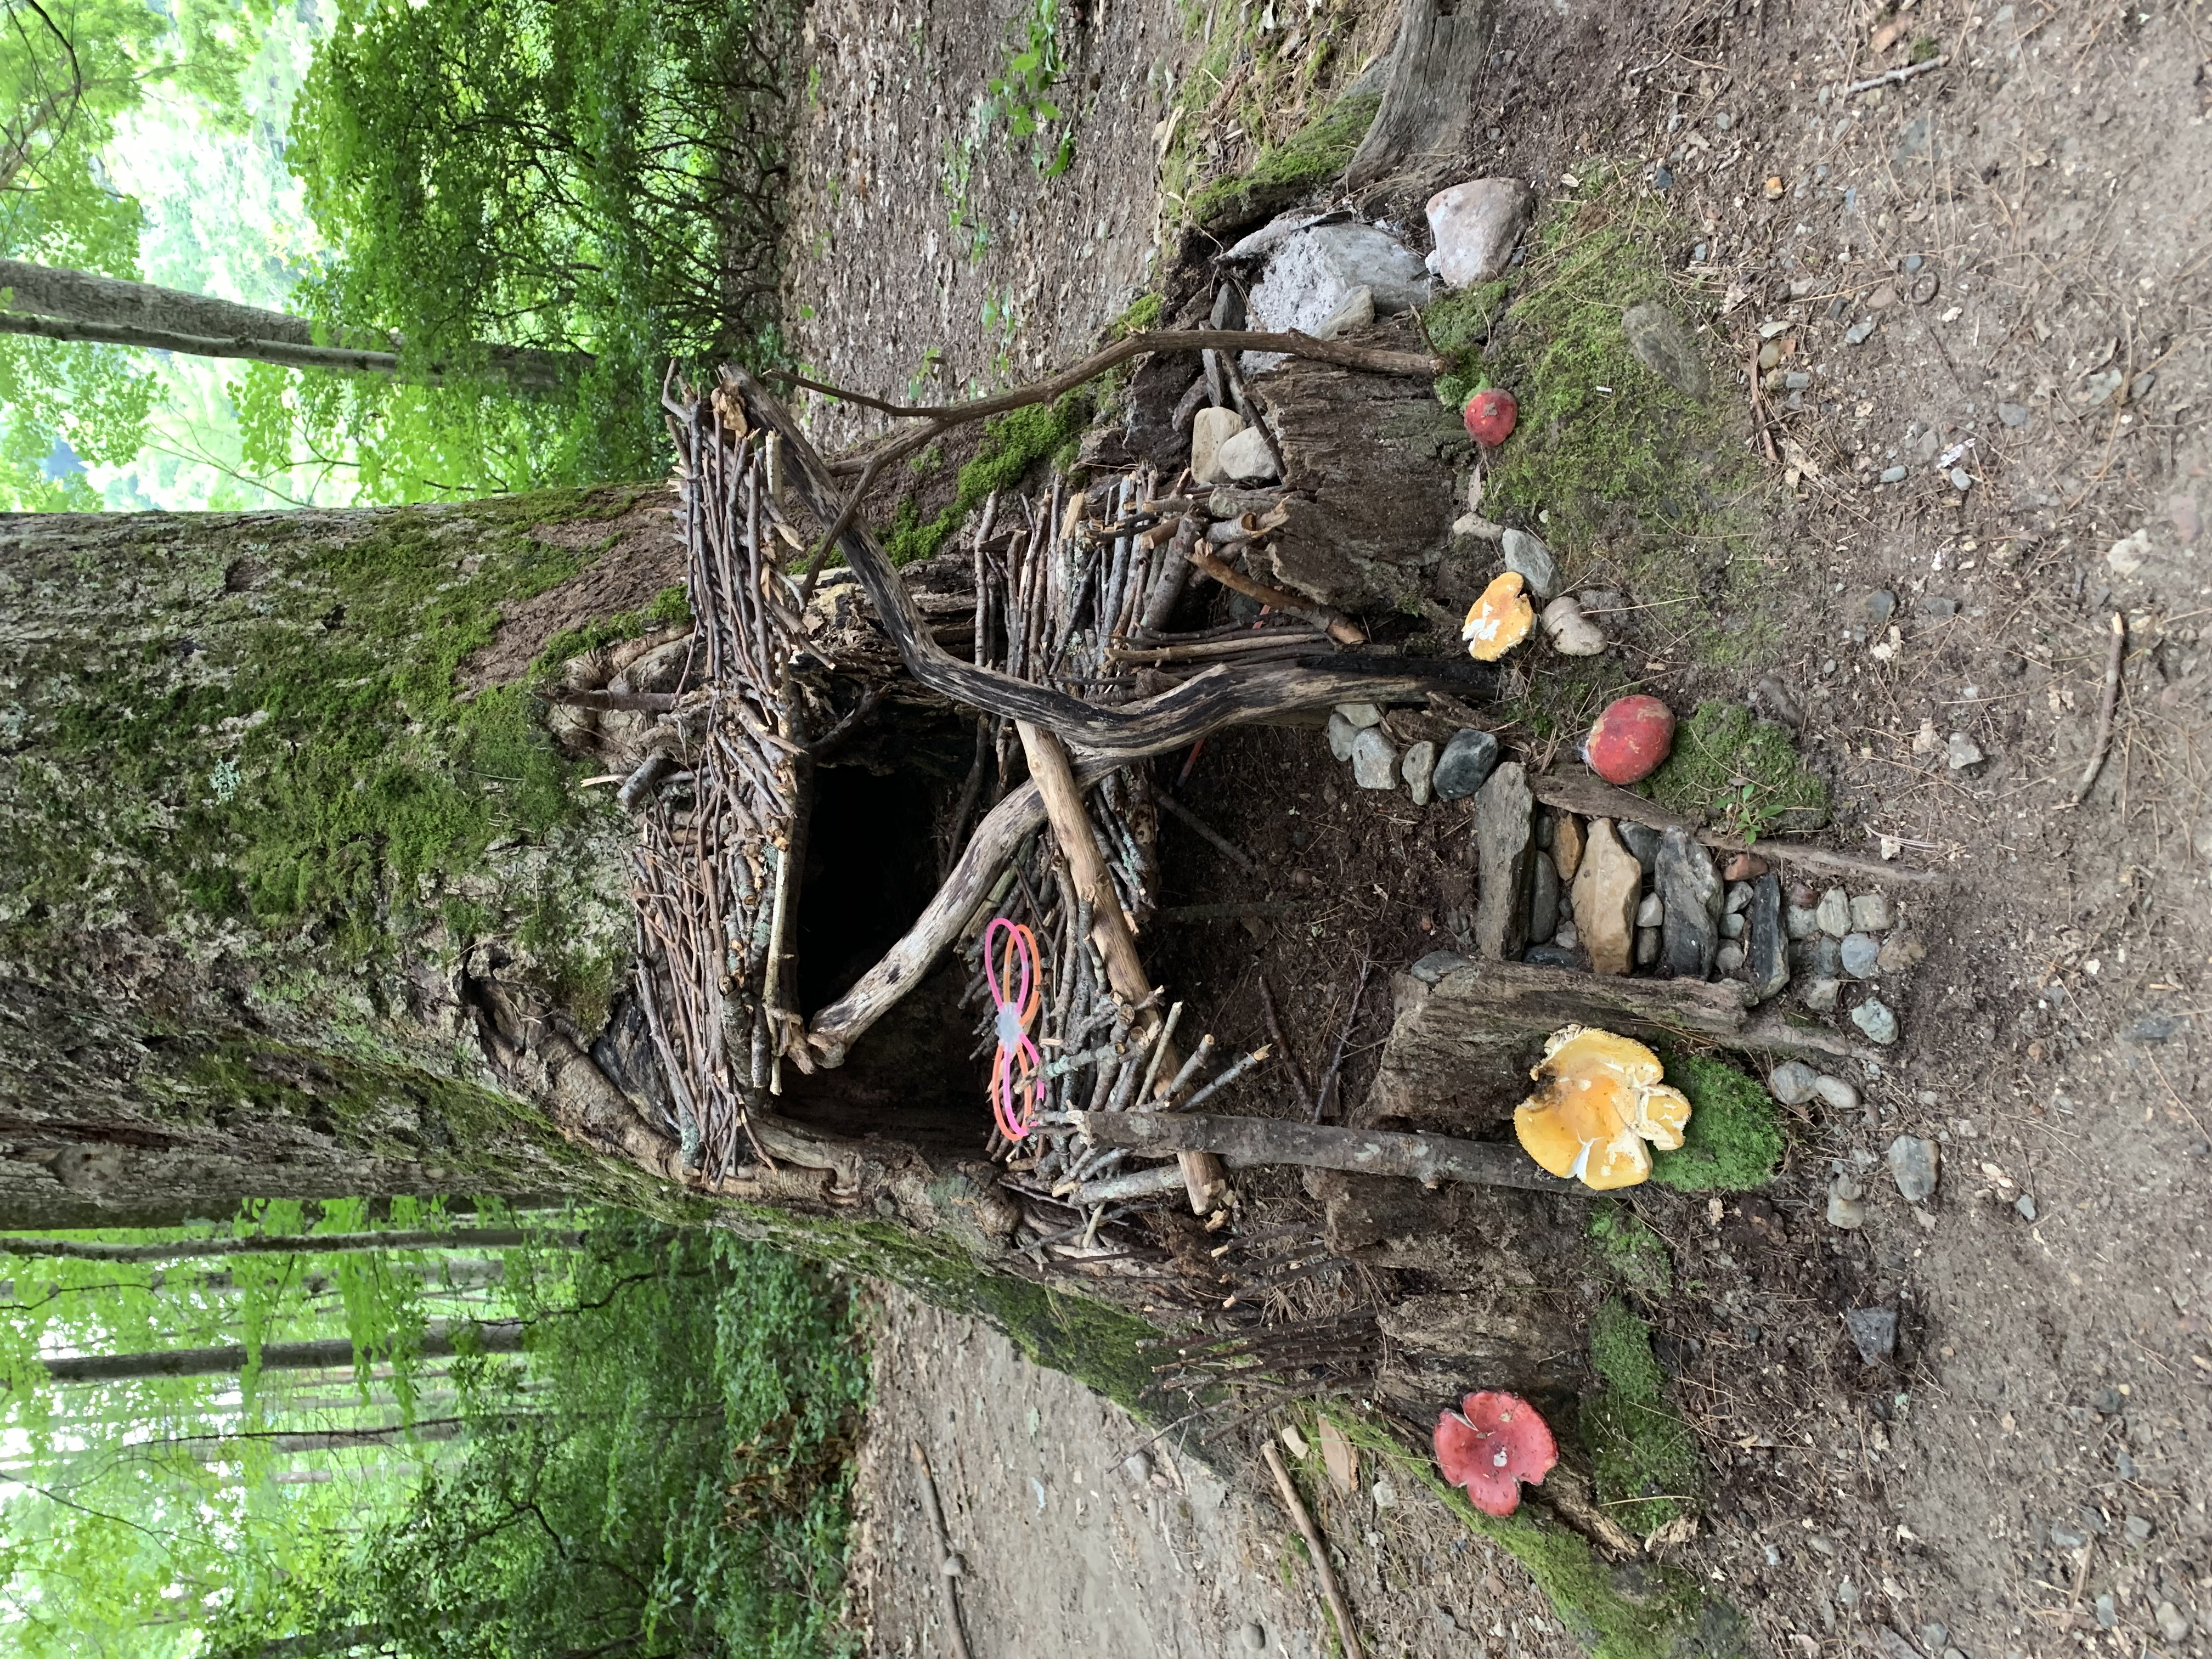 Family Camping at Mohawk Trail State Forest   The Global Kid's Clan